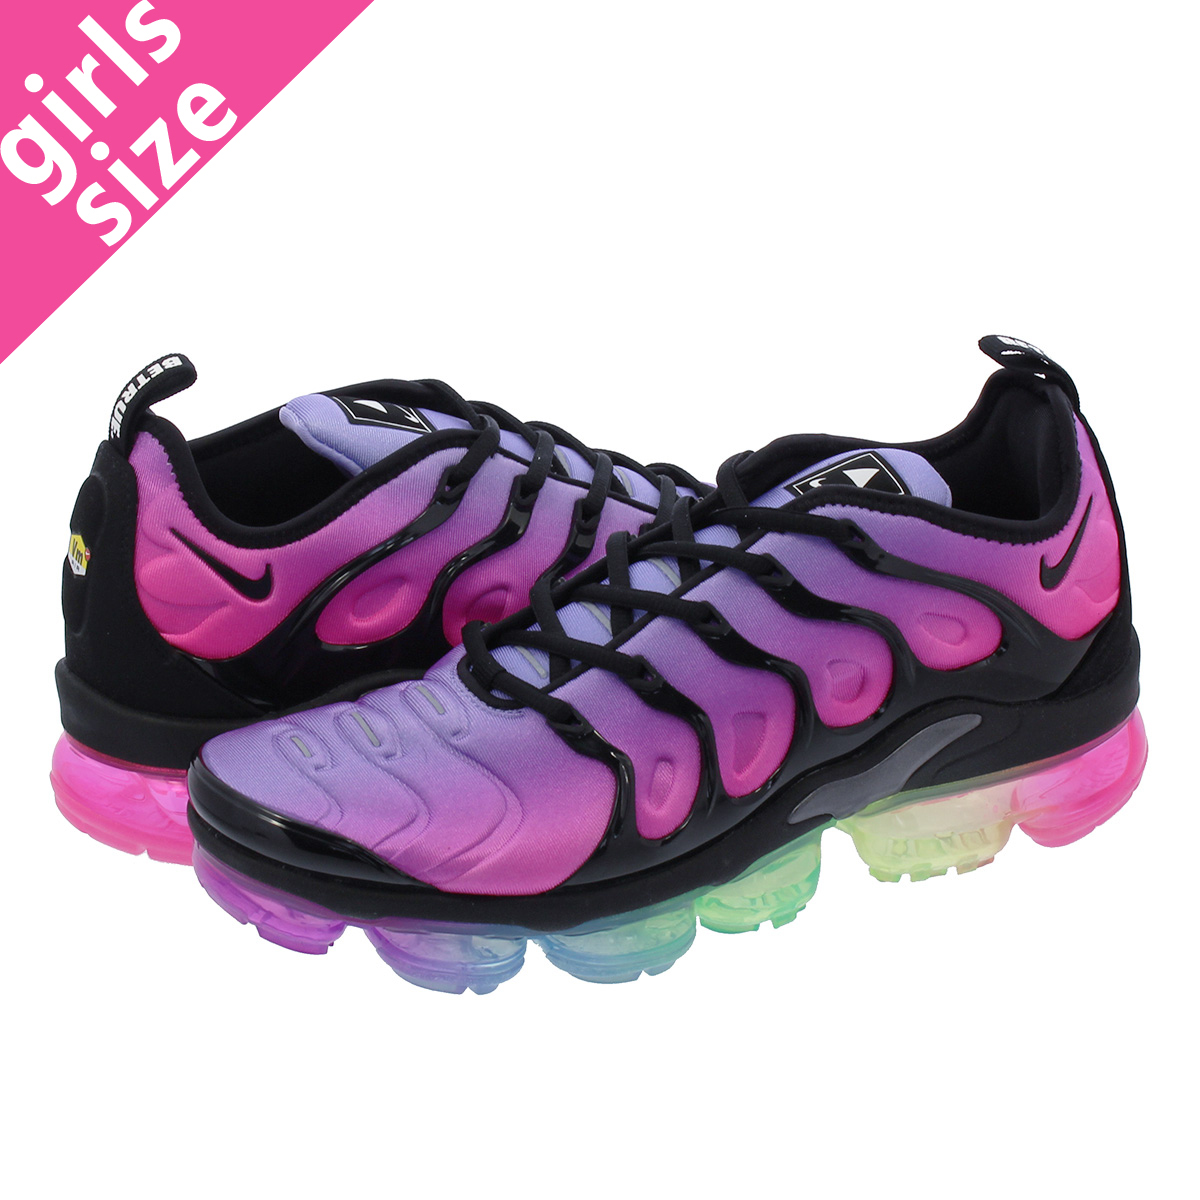 differently 27818 5d018 NIKE AIR VAPORMAX PLUS Nike vapor max plus PURPLE PULSE/PINK BLAST/MULTI  COLOR/BLACK ar4791-500